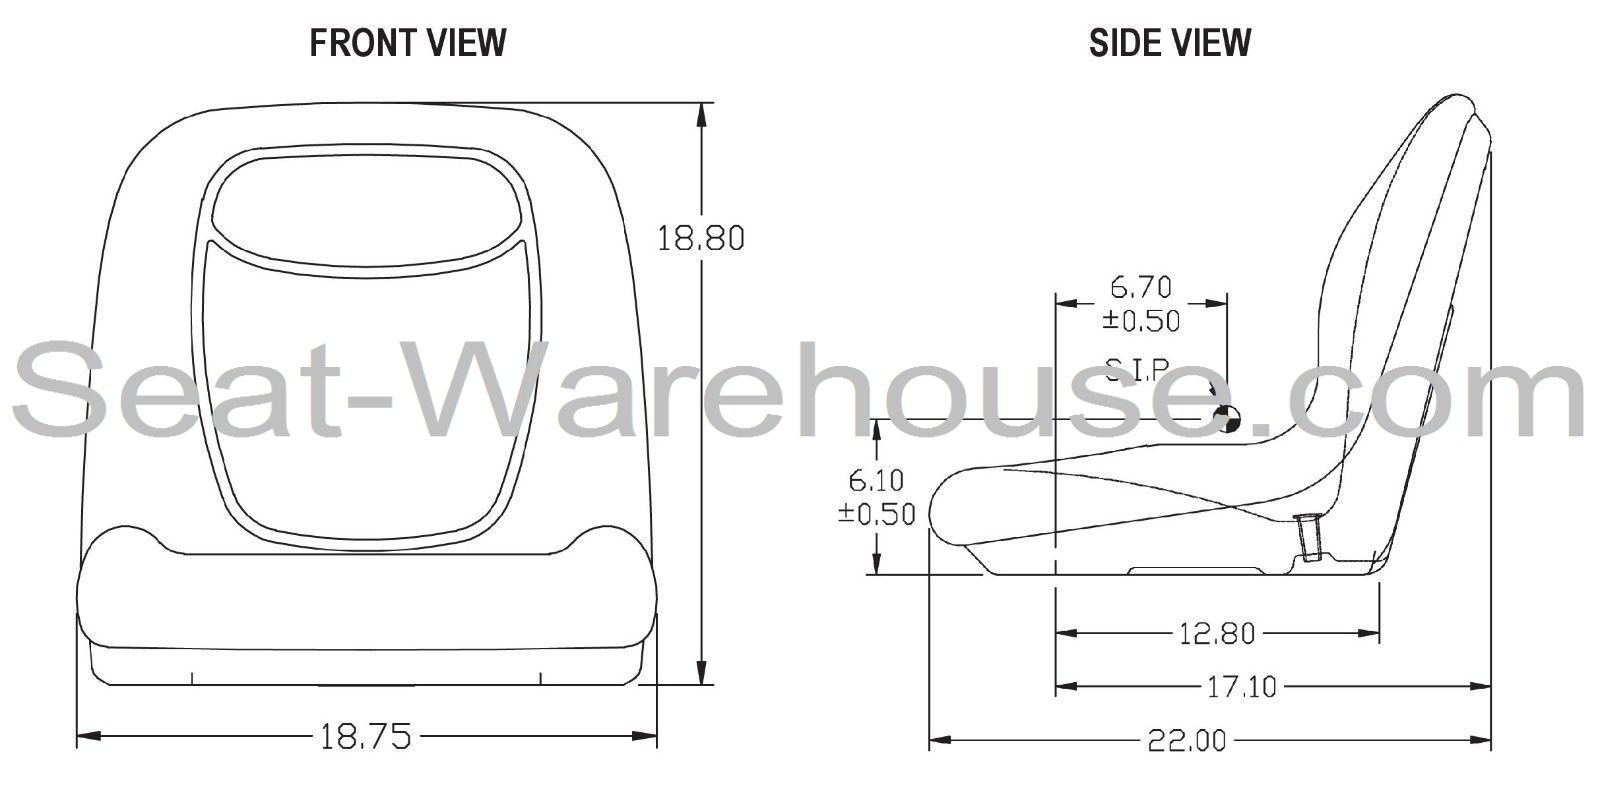 [WRG-1299] Bobcat 440 Skid Steer Wiring Diagram B